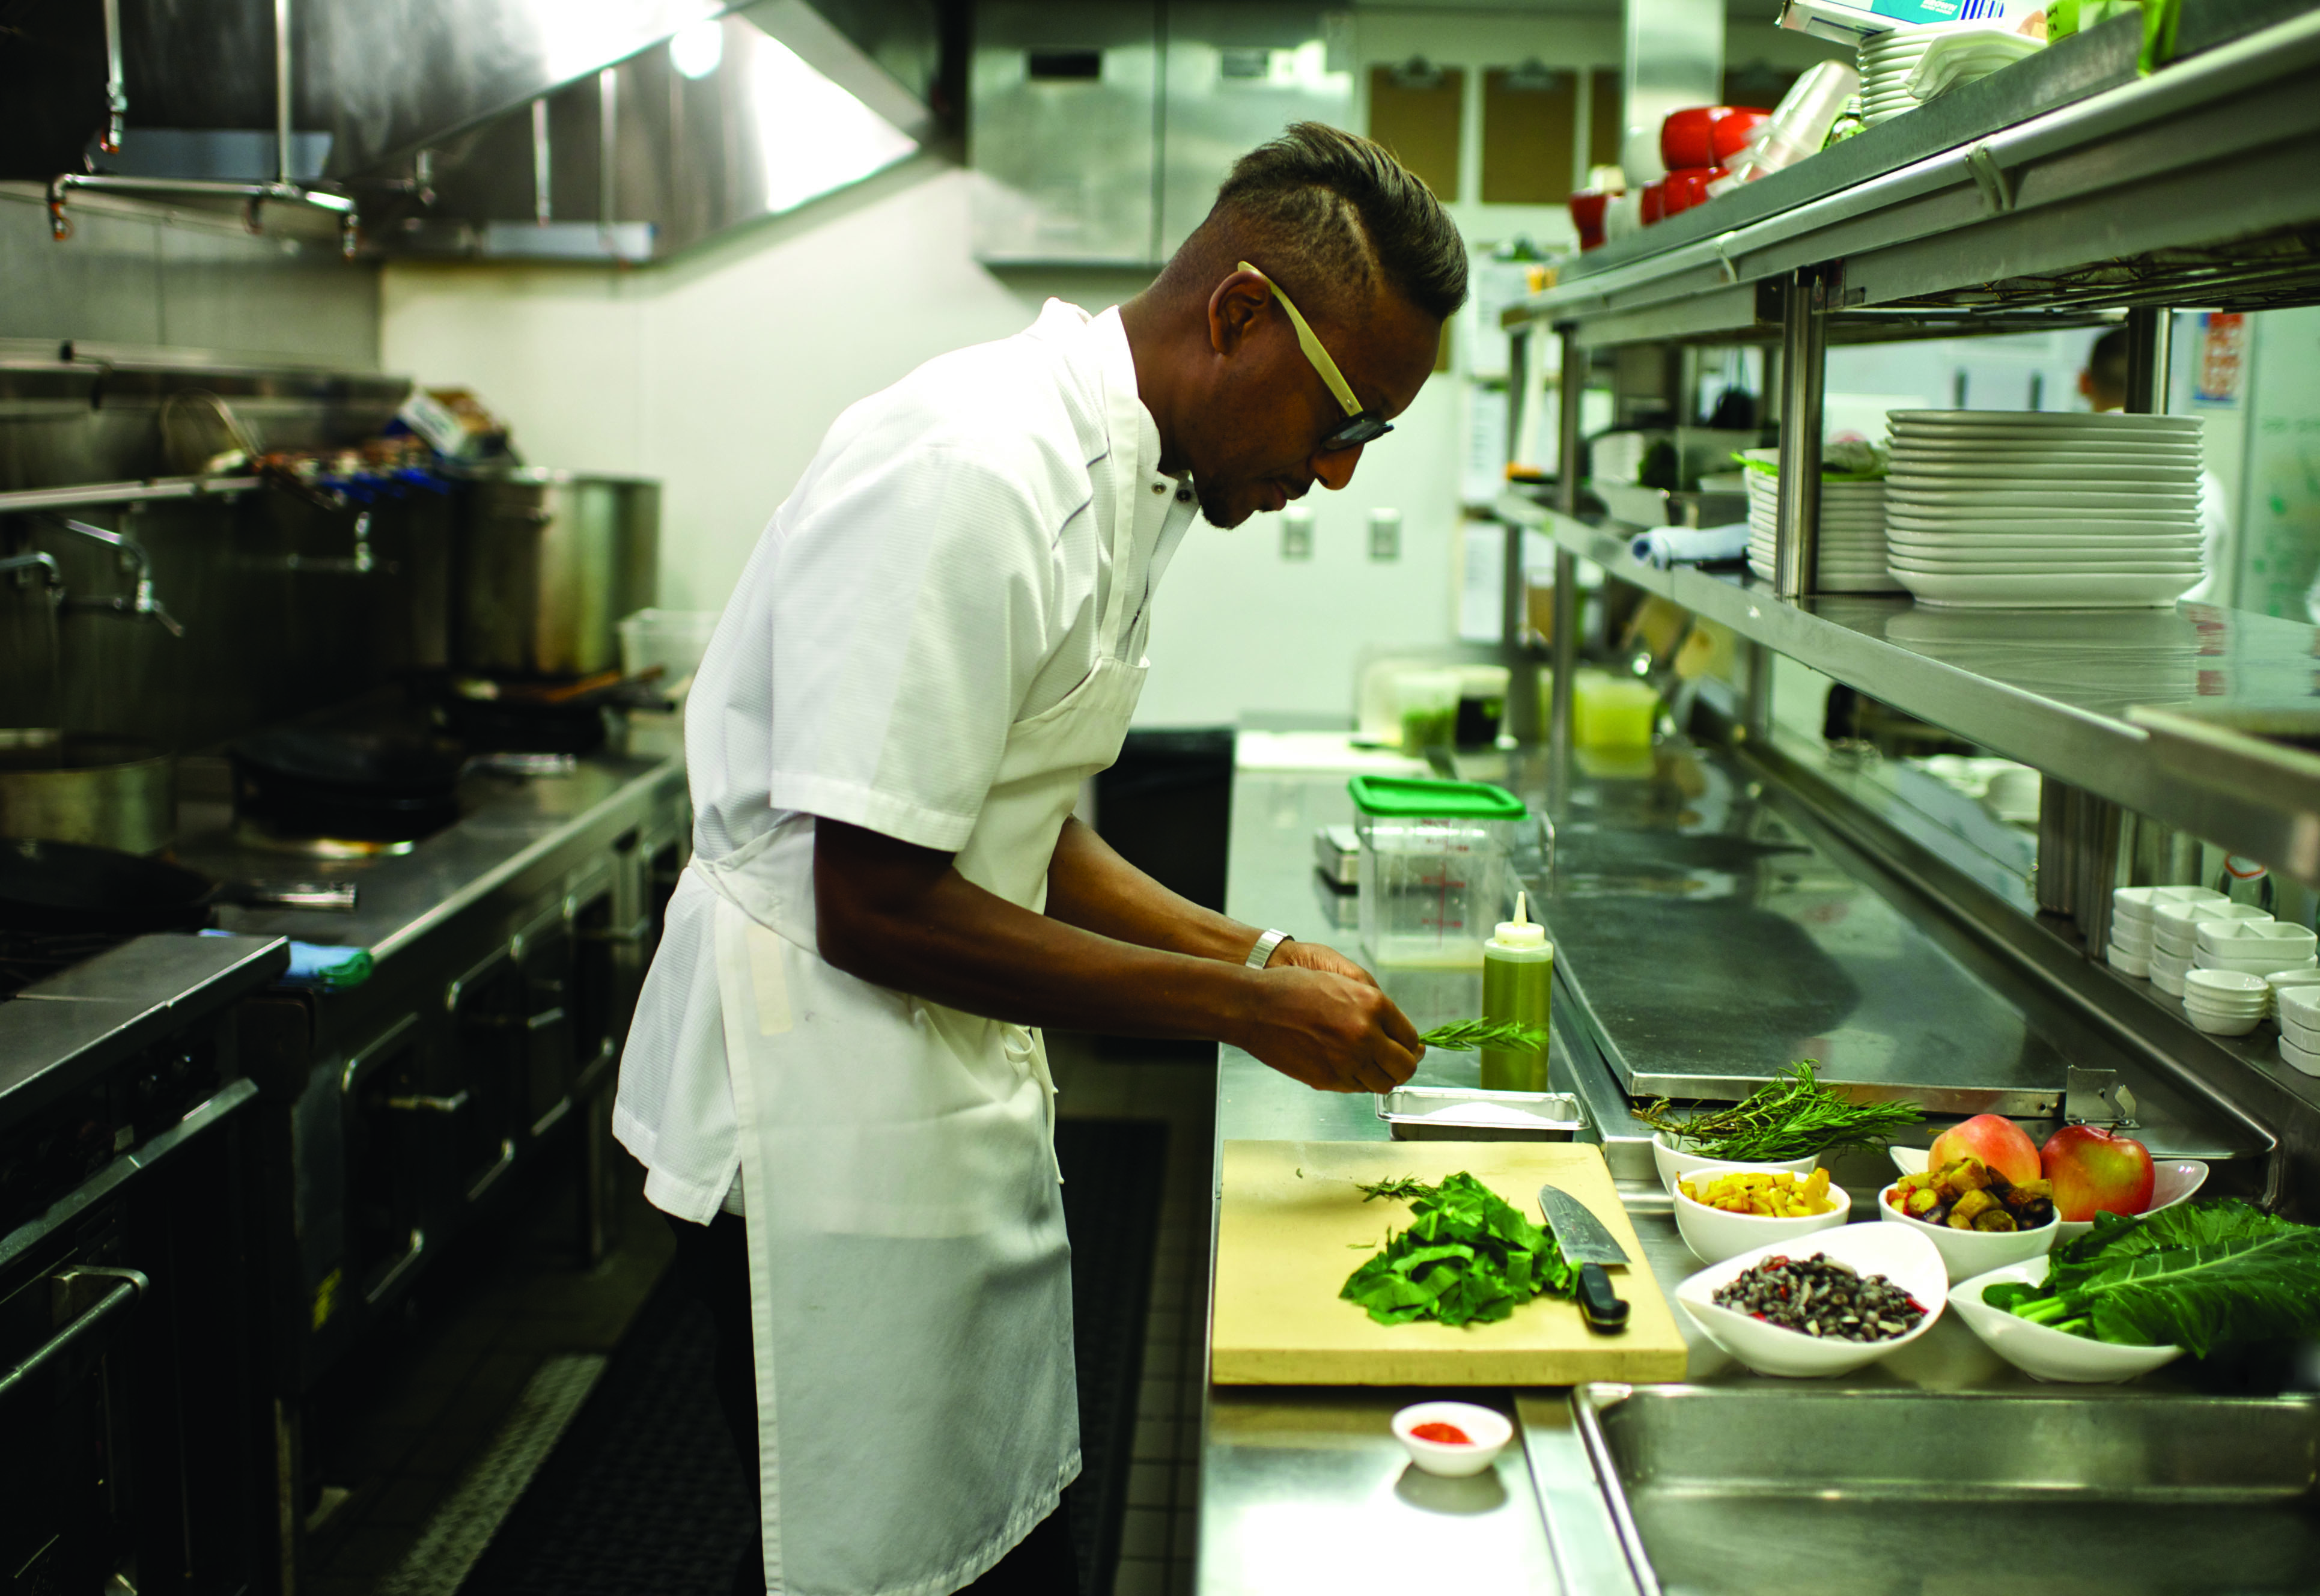 Executive Chef Gregory Gourdet of Departure Restaurant and Lounge